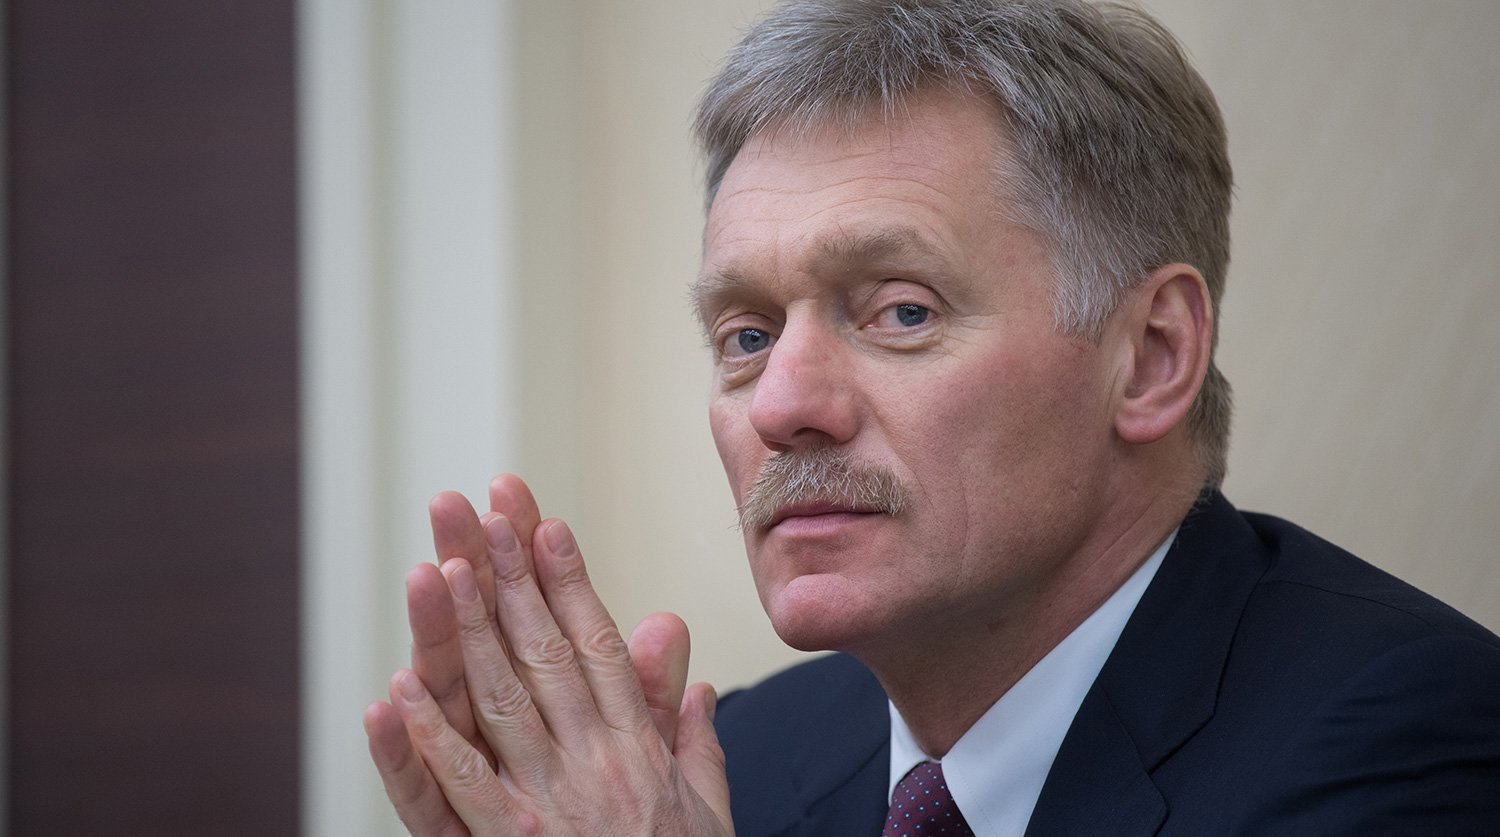 Hoping for the best, but ready for the worst - Peskov on Russia-US relations